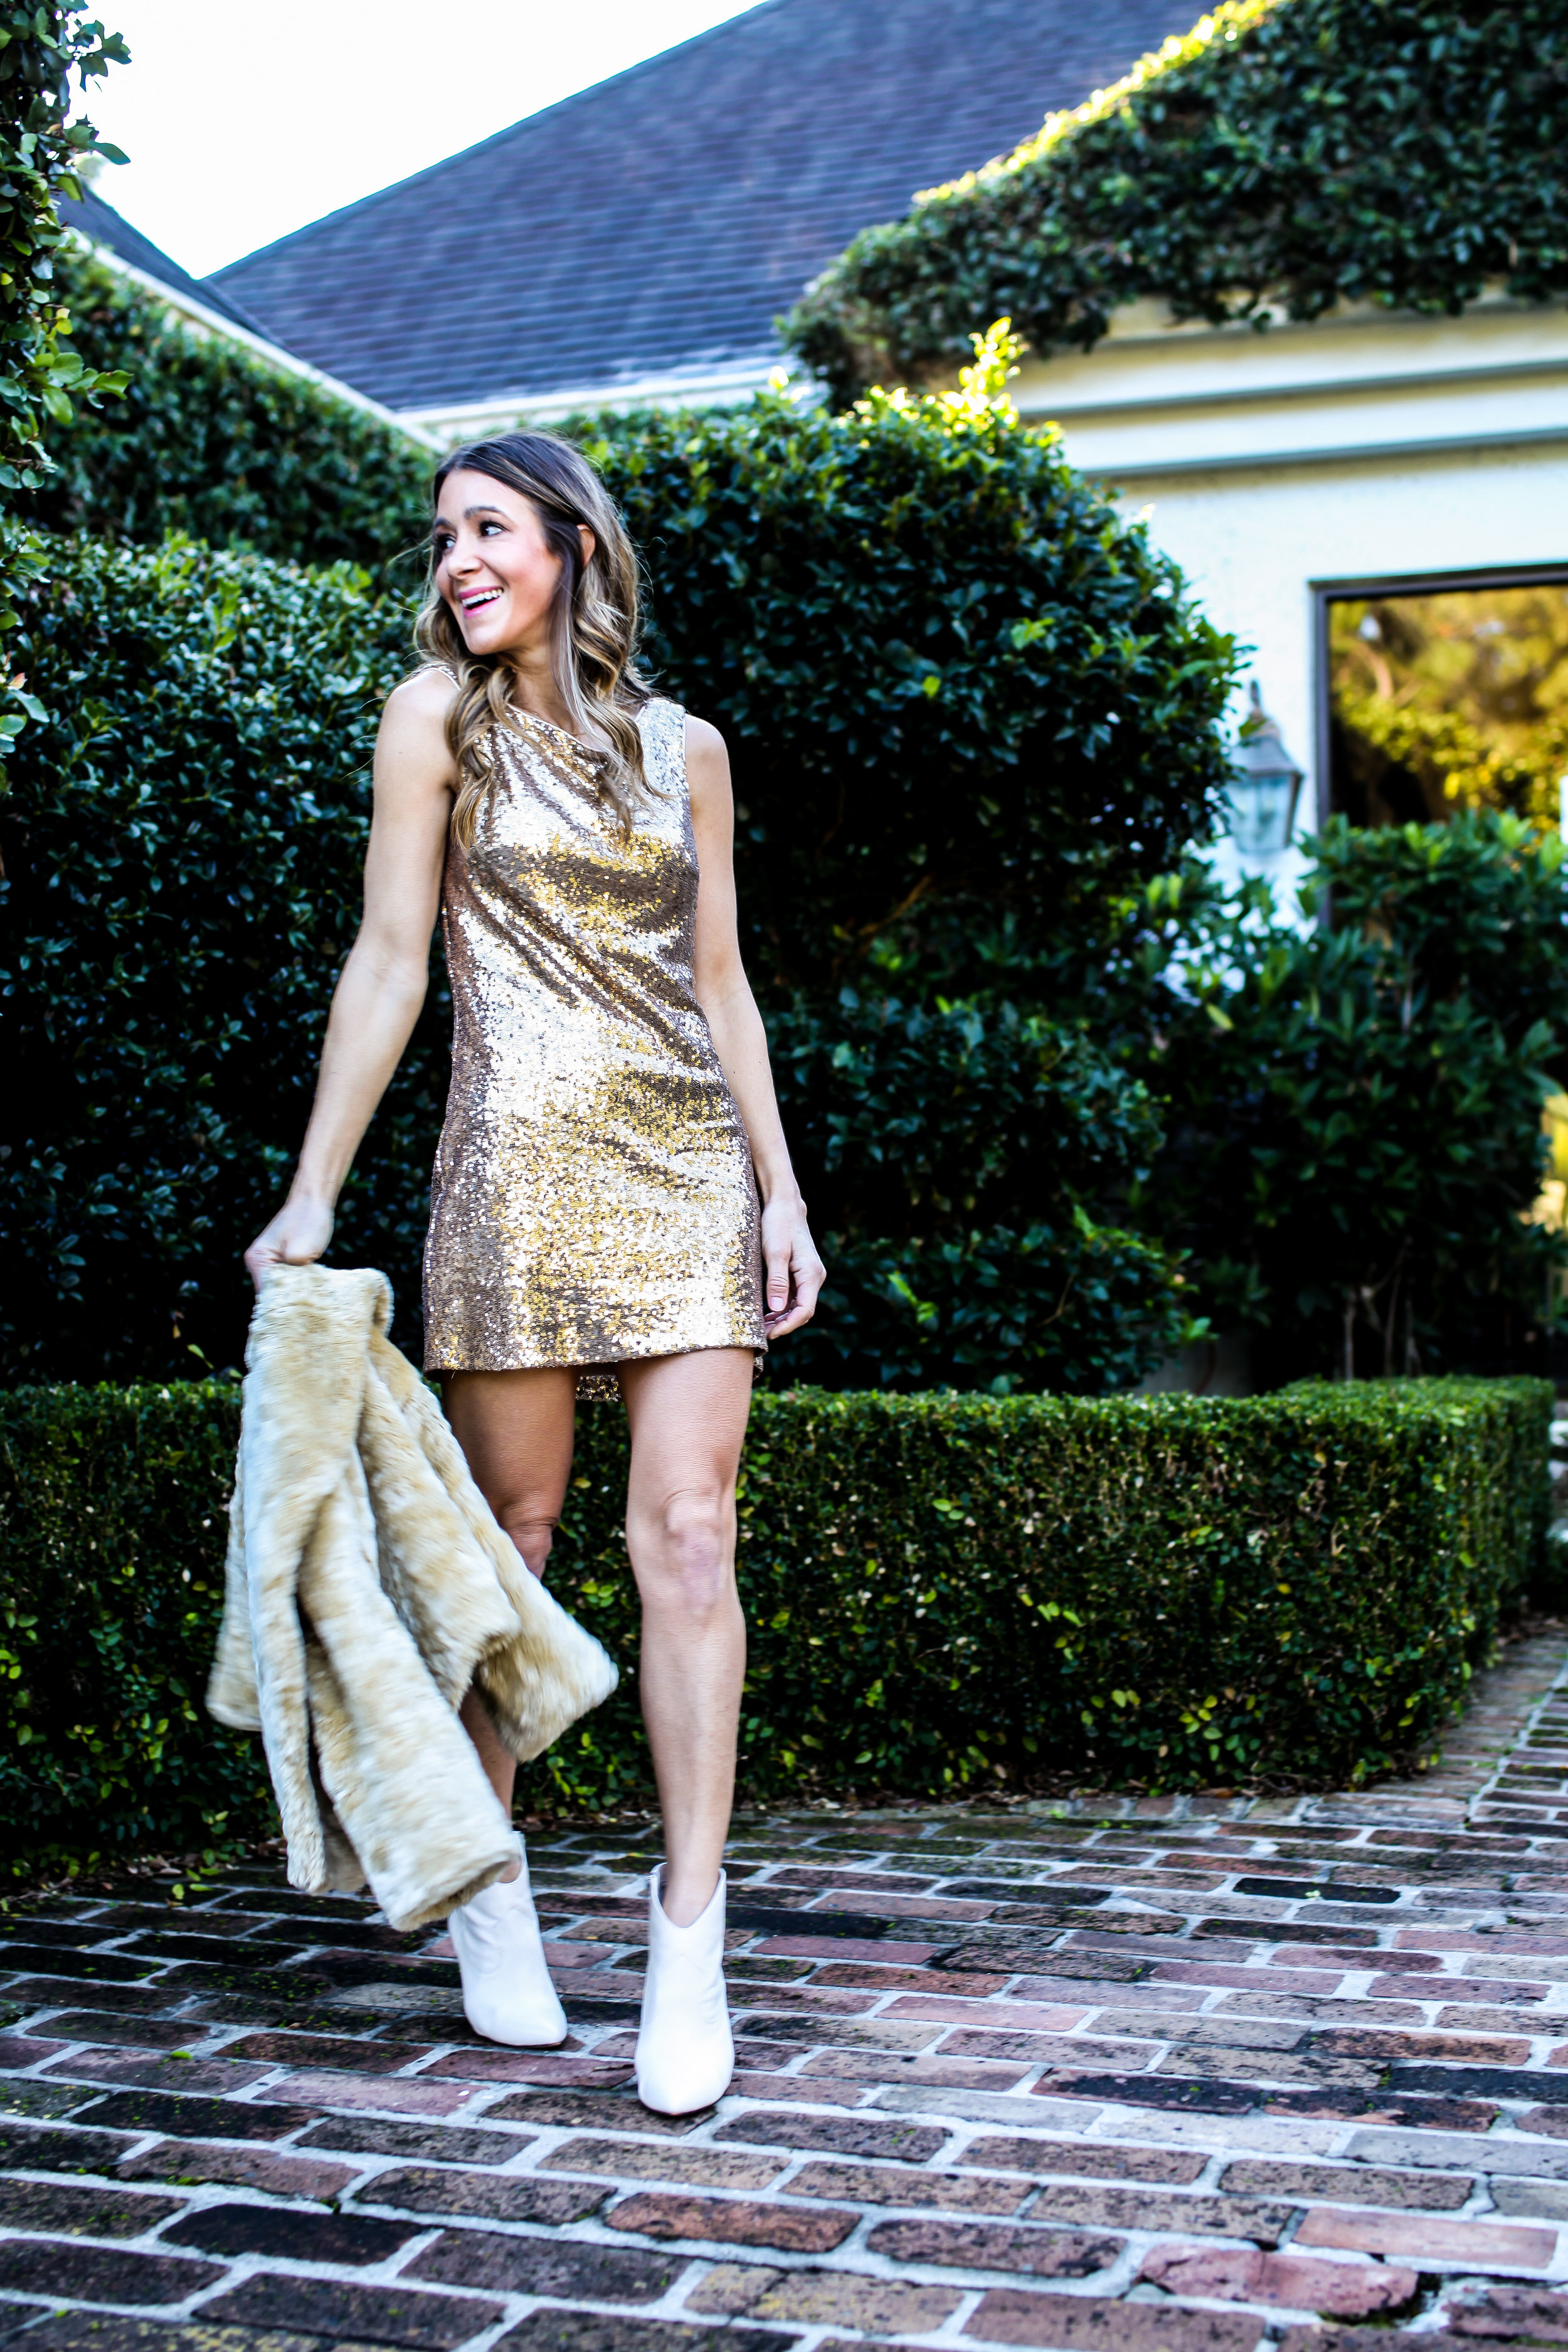 GOLD SEQUIN DRESS - JAY GODFREY  HERE  AND  HERE  | WHITE BOOTIES - VINCE CAMUTO - HERE - SIMILAR HERE | FAUX FUR JACKET - OLD - SIMILAR  HERE  | GOLD HEELS IN OTHER PICTURES - SAM EDELMAN -  HERE  |